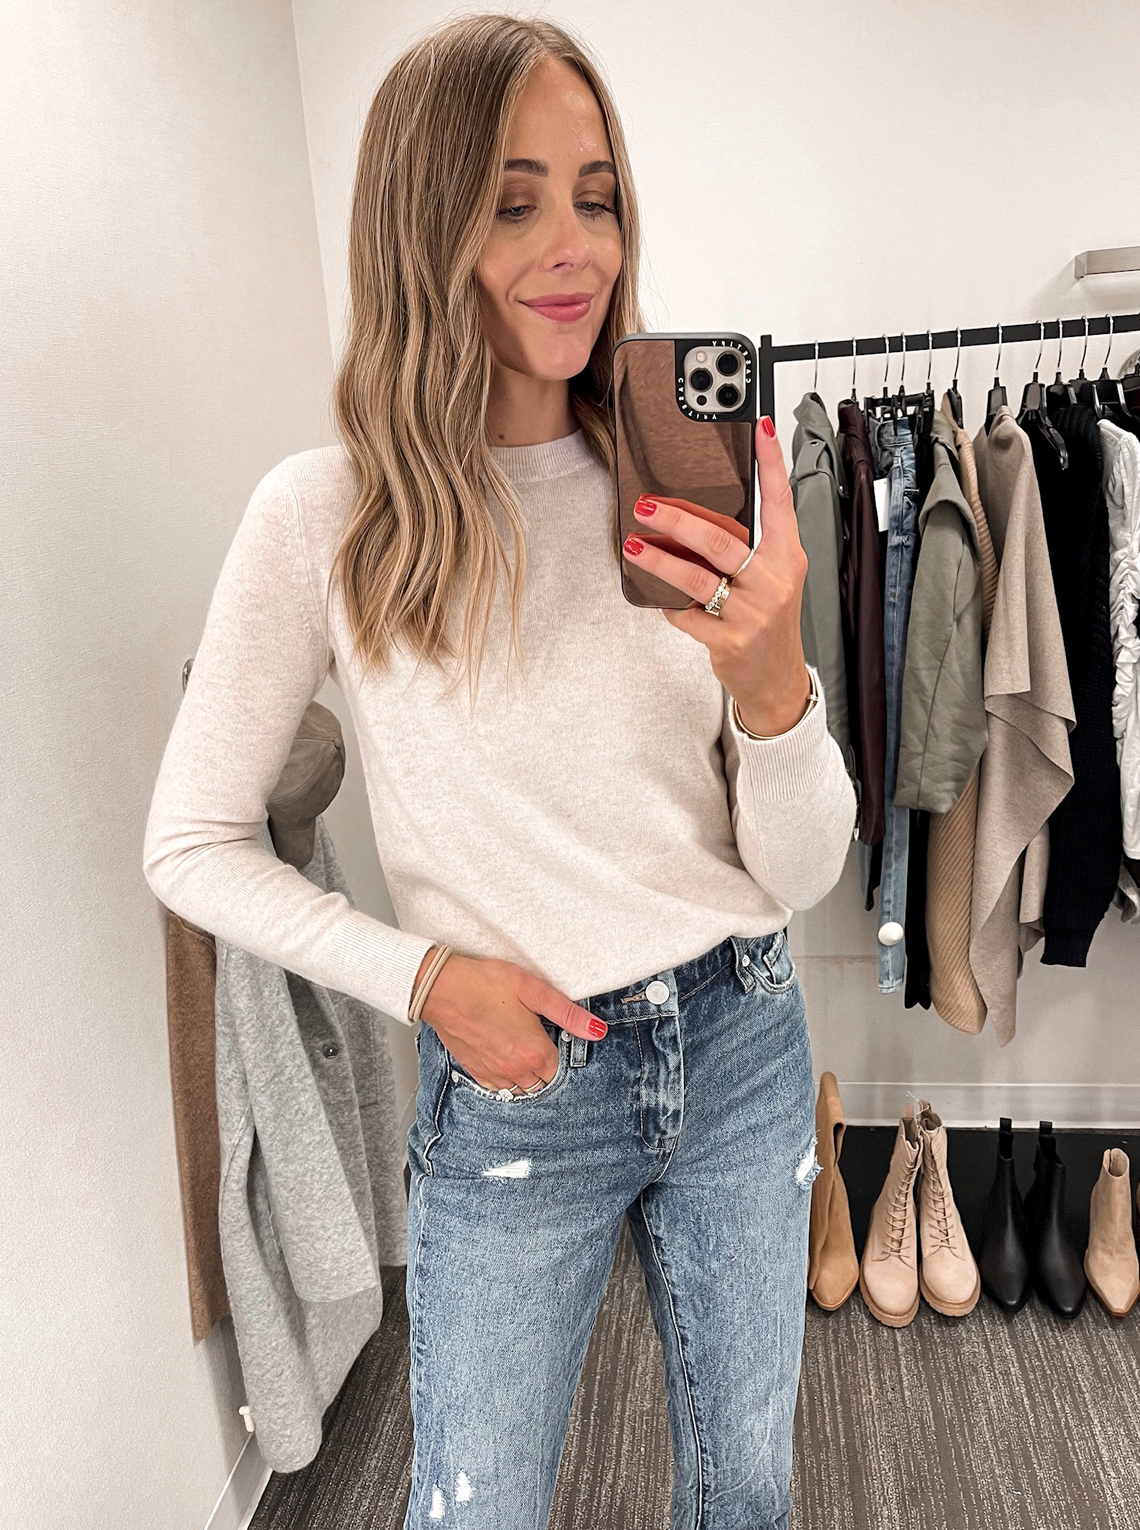 Fashion Jackson Vince Cashmere Sweater BlankNYC ripped jeans NSALE